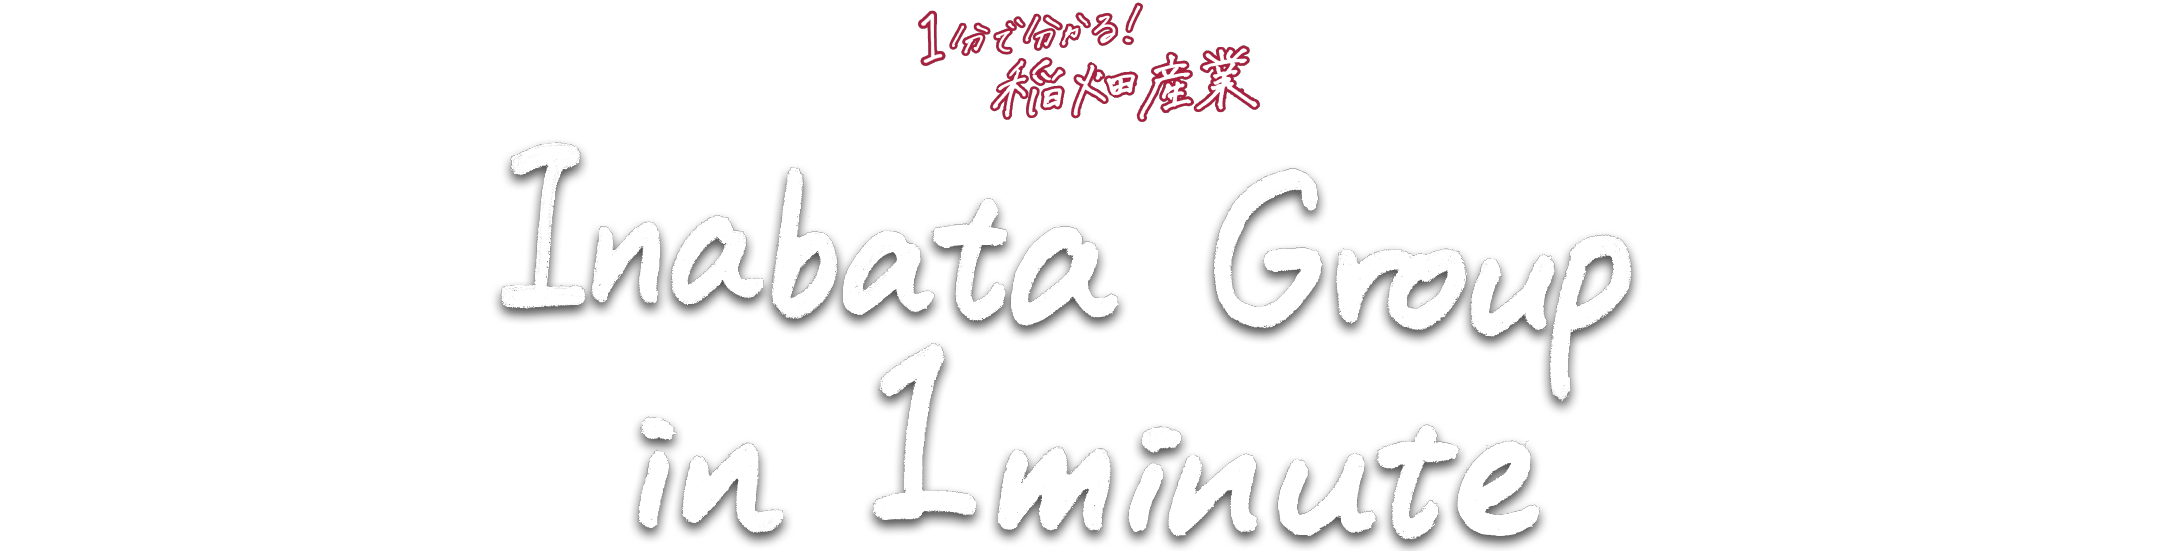 Inabata Group in 1 minute